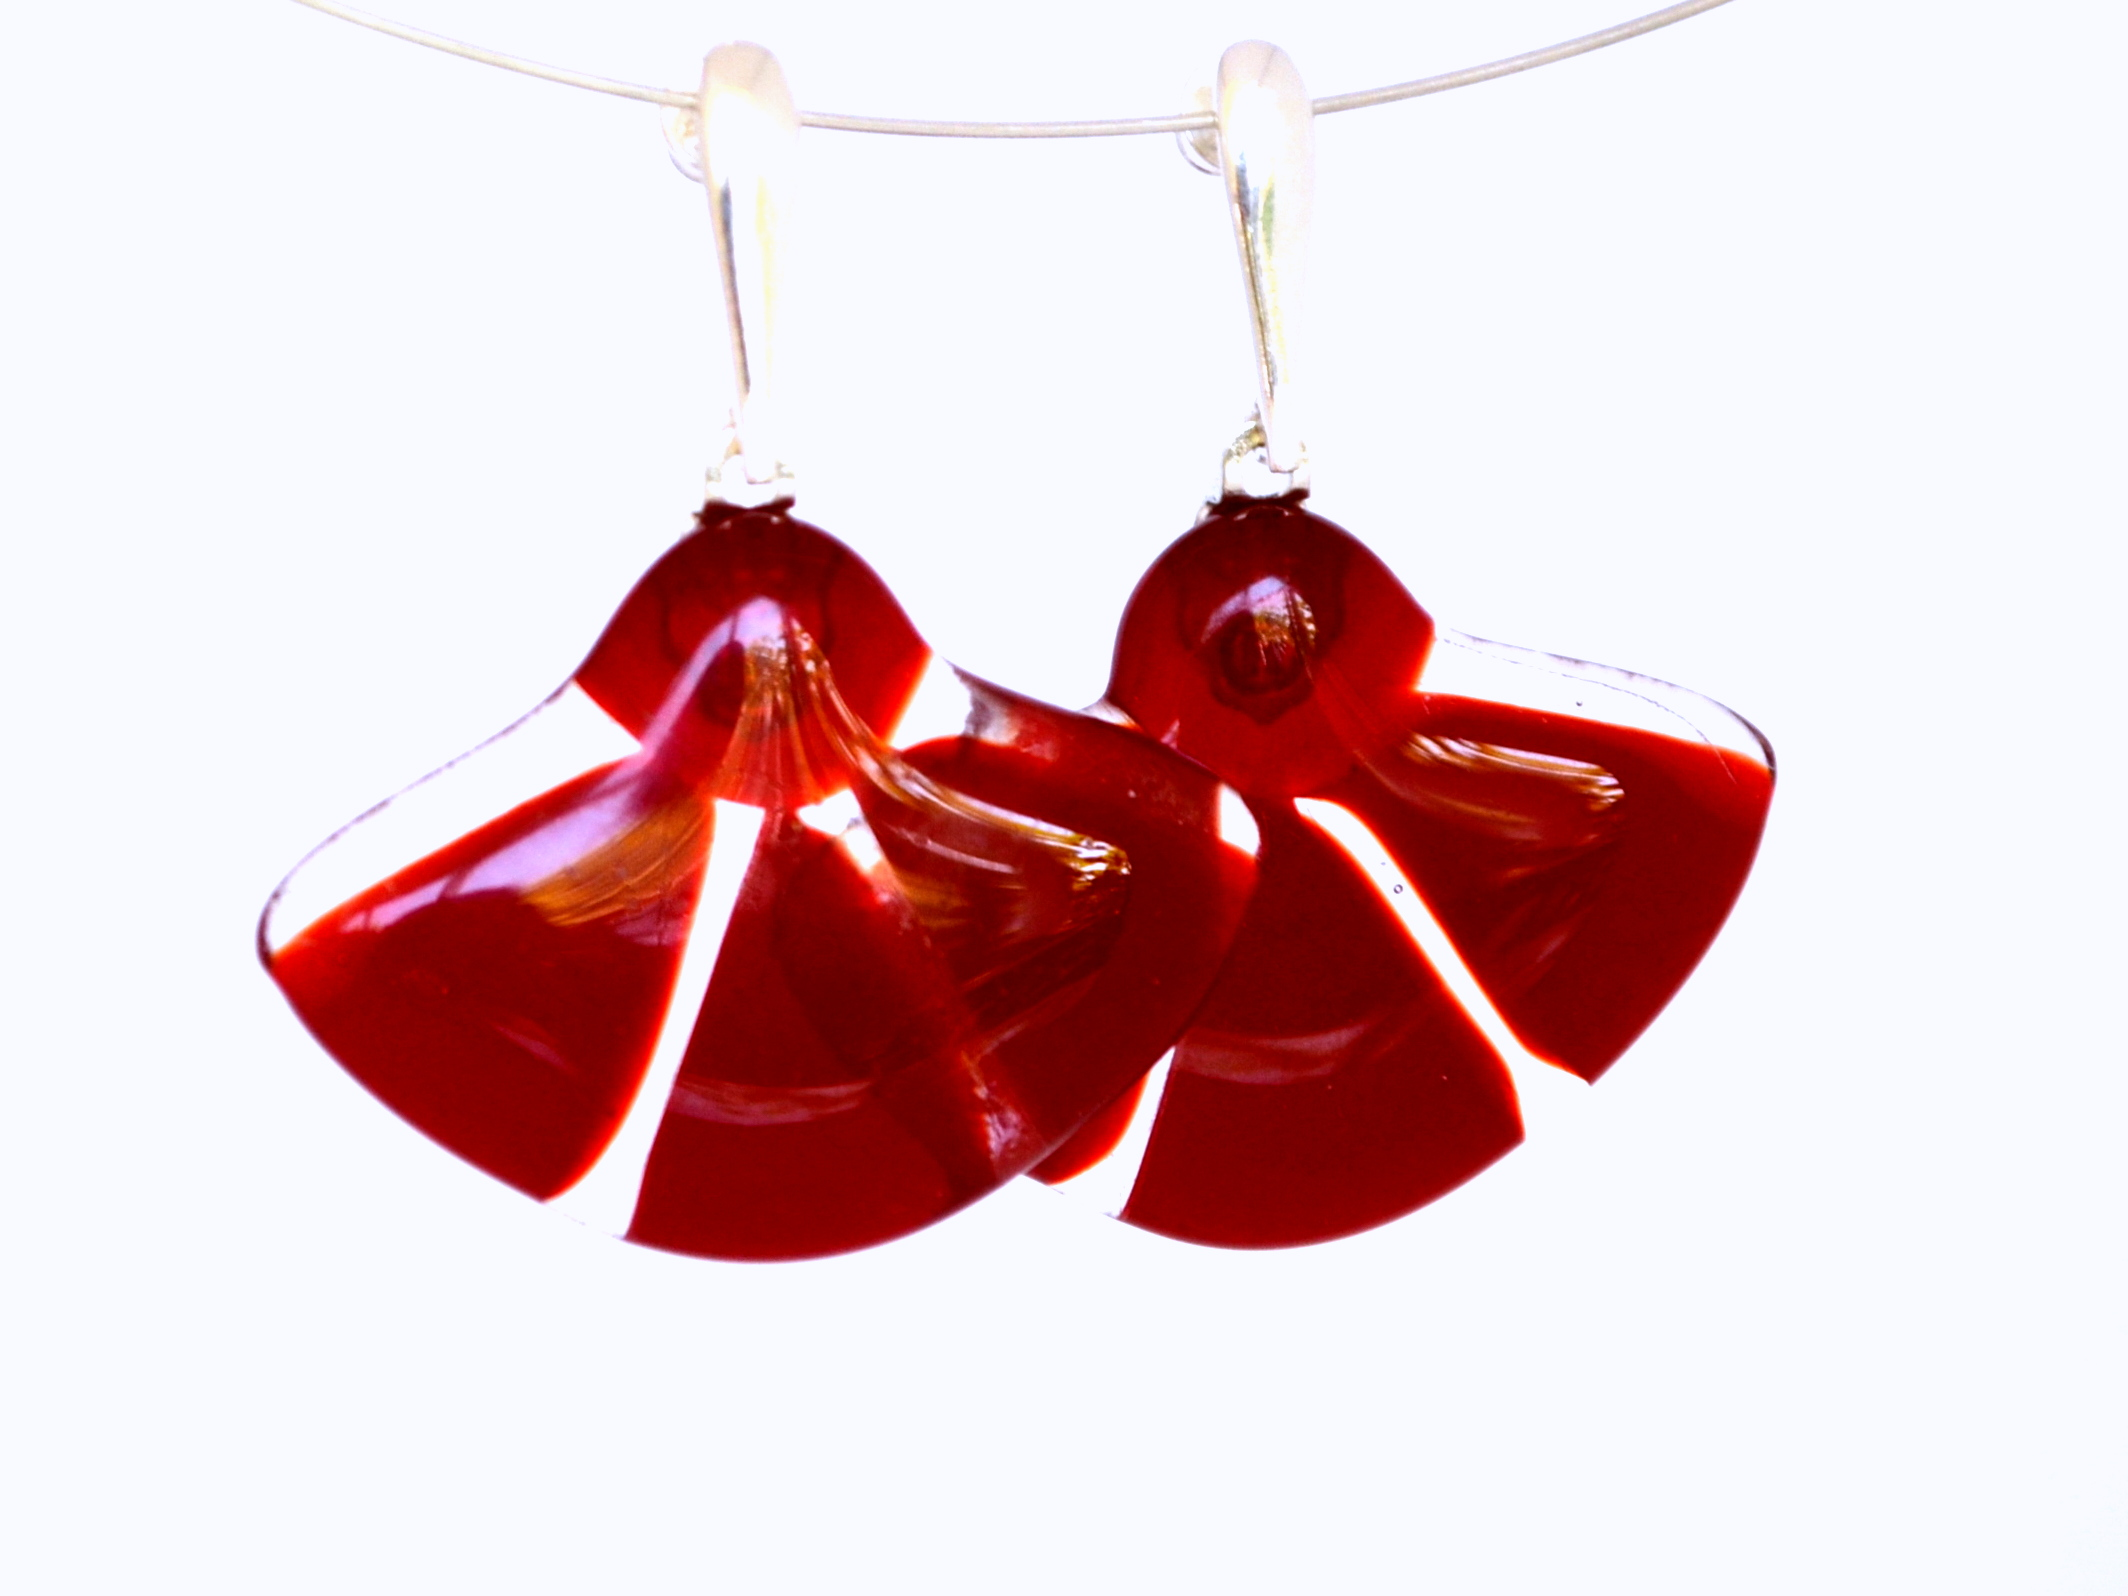 corporate look, corproate jewelry, glass jewelry, jewelry, sterling silver, earrings, red, glass earrings, red point tailor, custom order, corporate jewelry